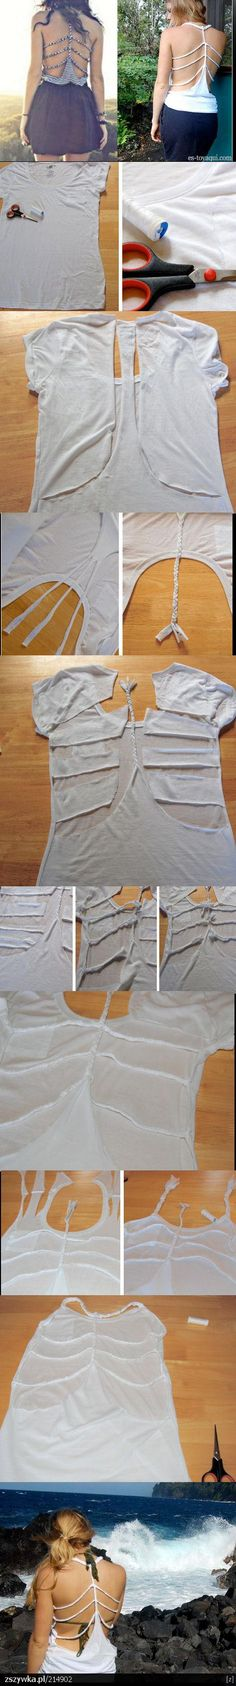 DIY open back cut up and braided shirt